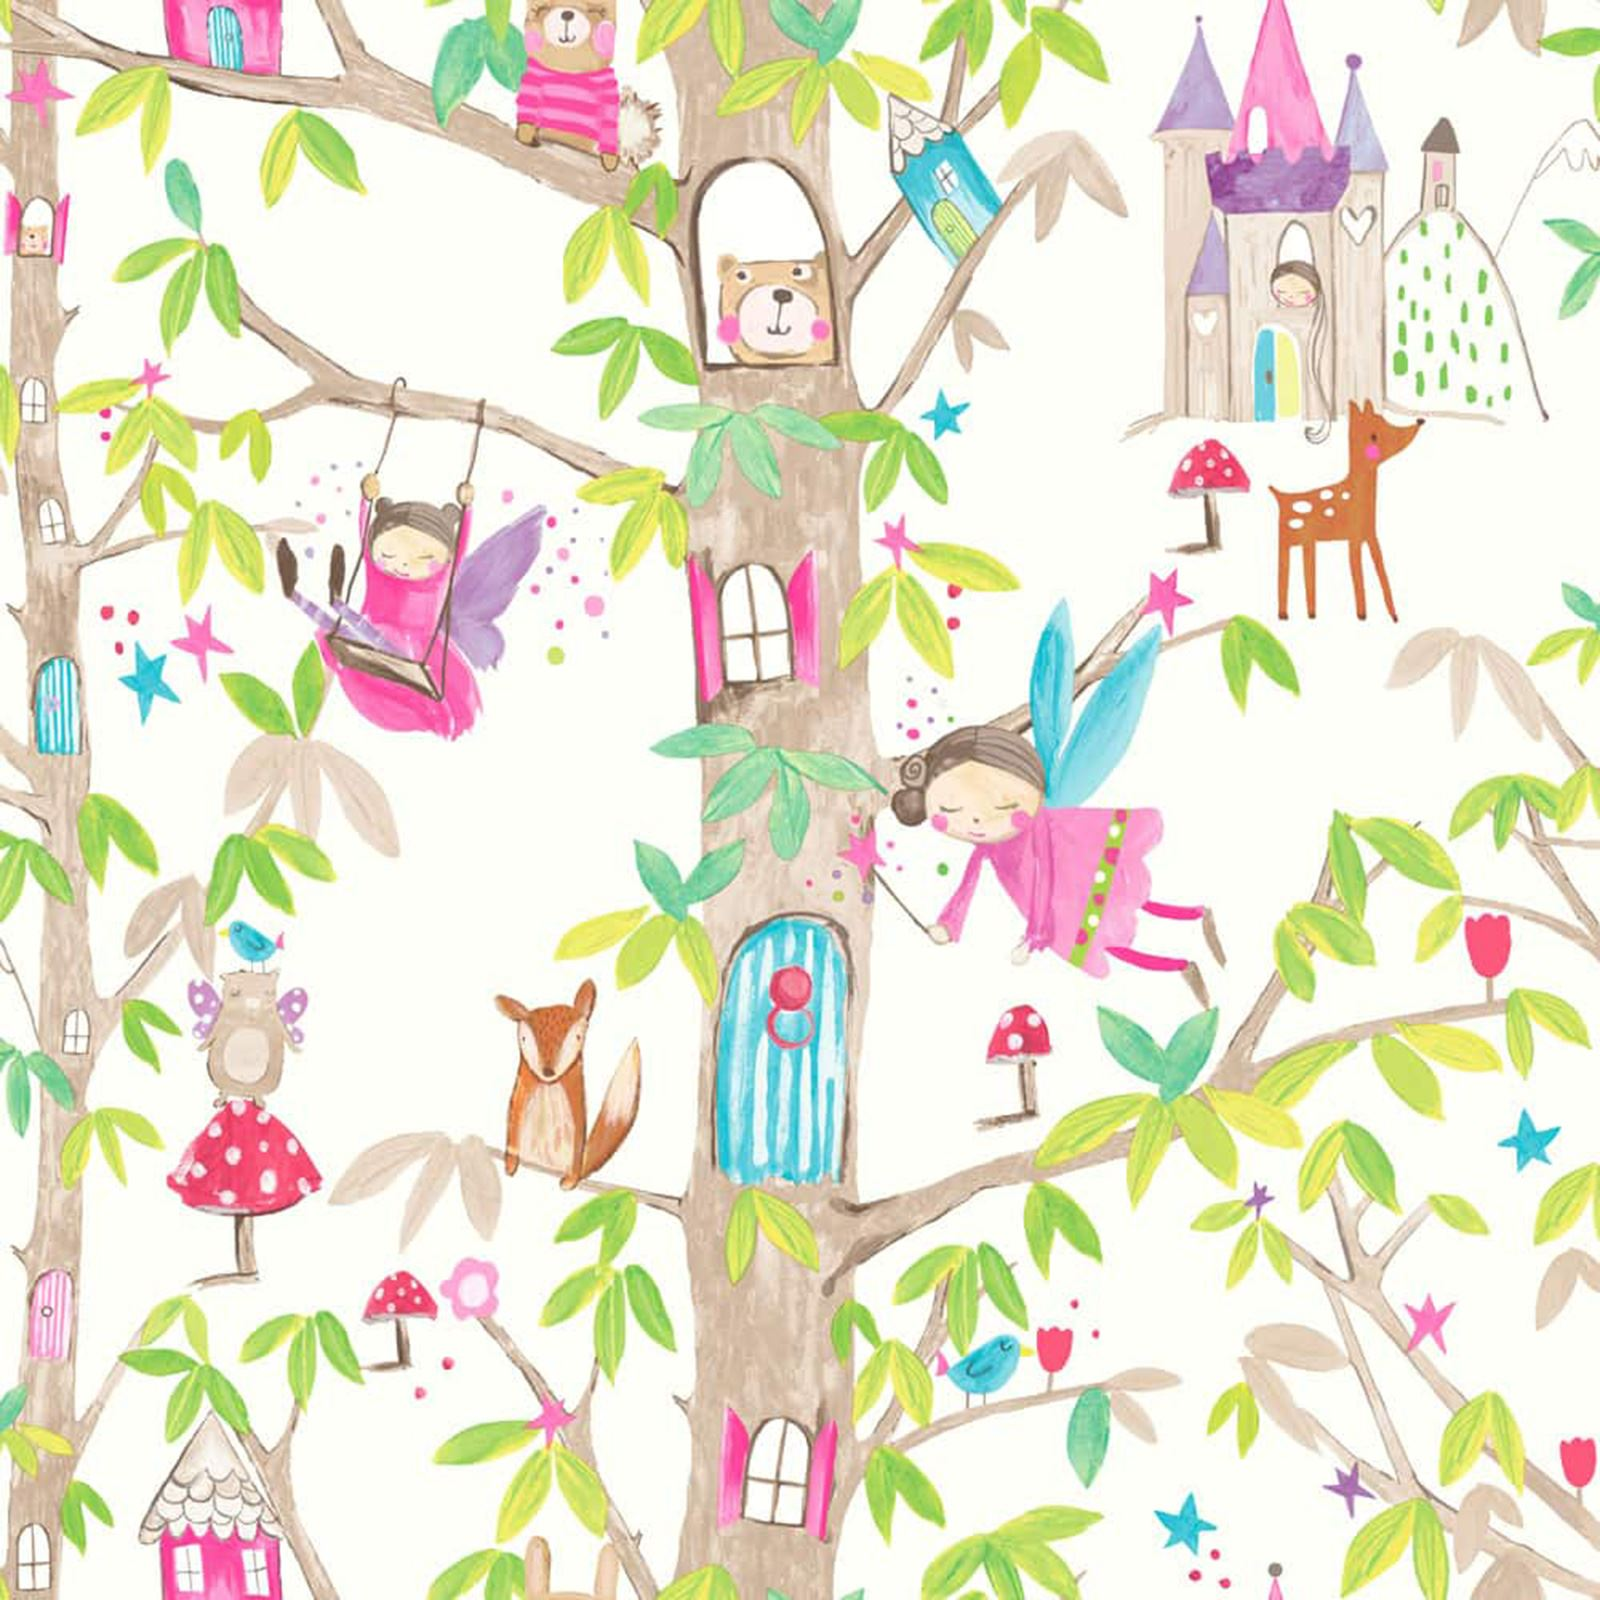 Fairy Princess Wall Stickers Fairy Dust Glitter Amp Woodland Fairies Wallpaper In Pink